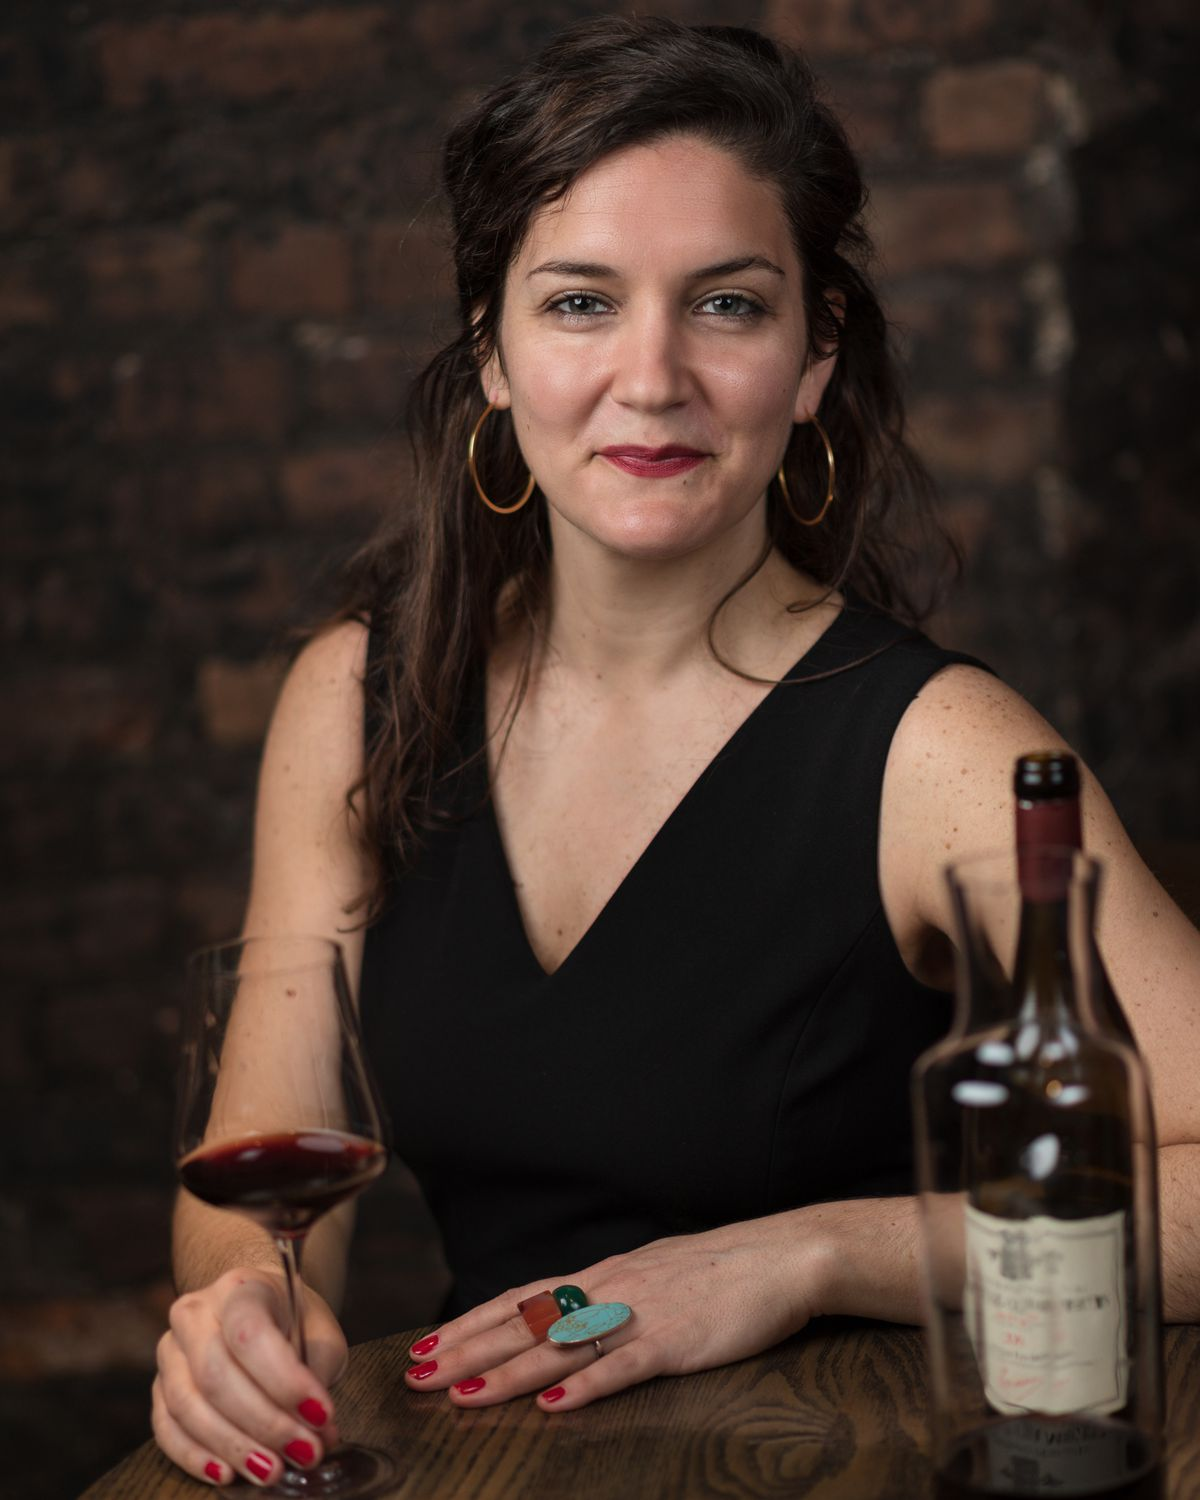 Sommelier with a glass of wine